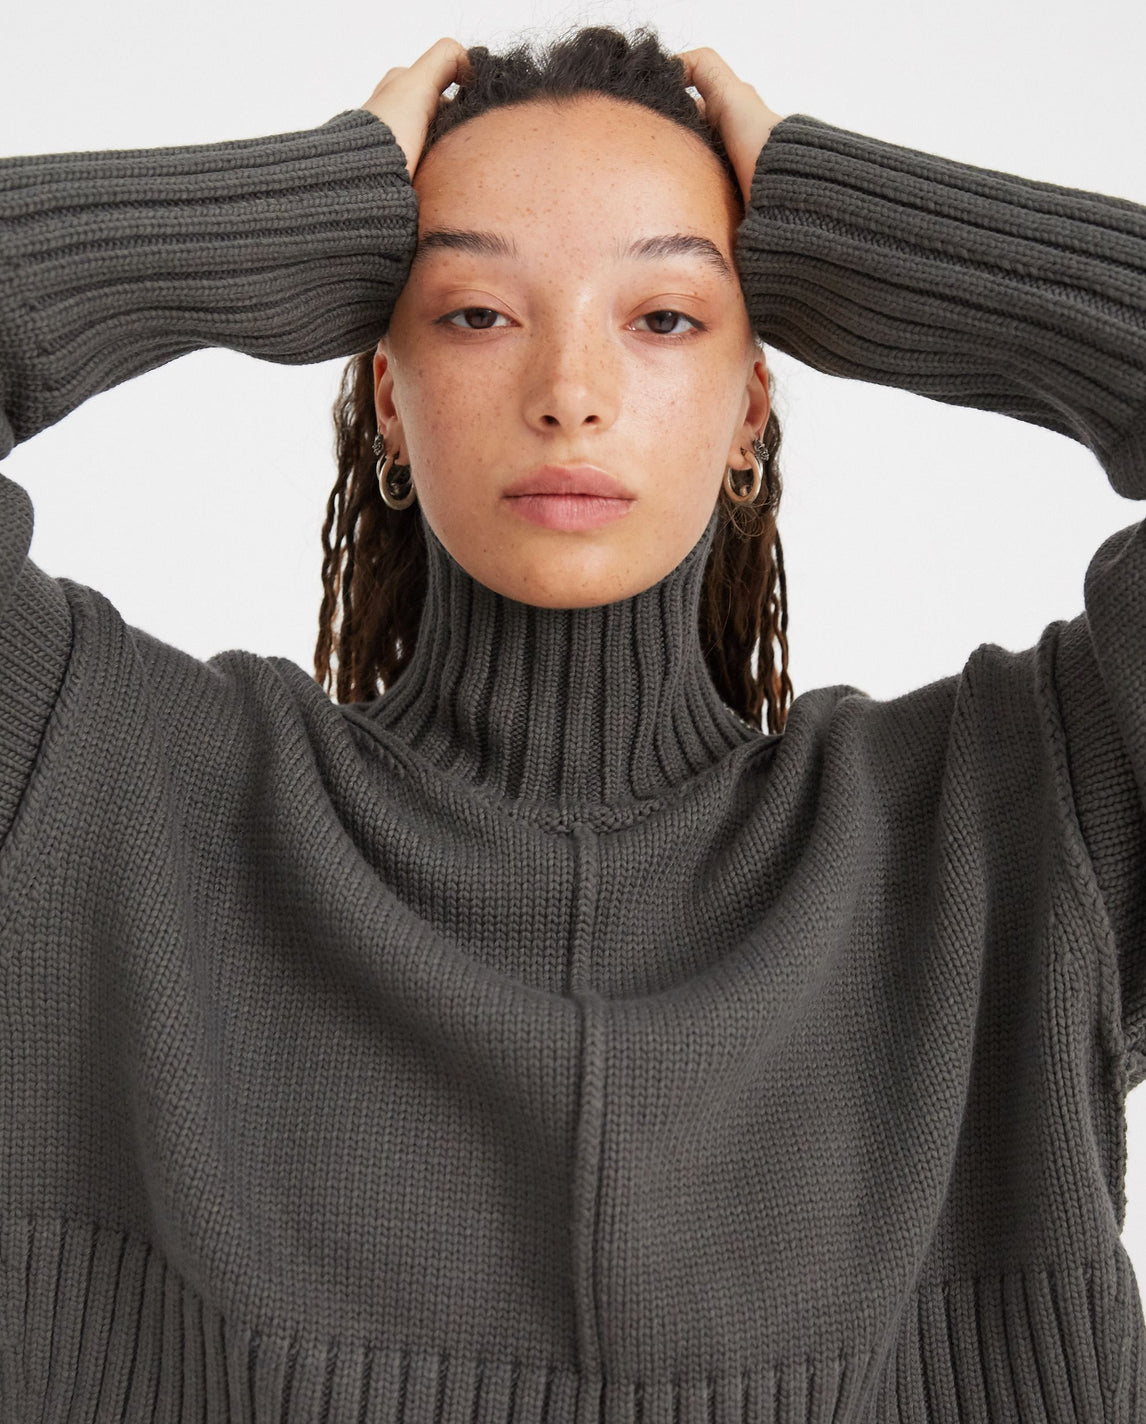 PETER DO - CROPPED OVERSIZED SWEATER - PD-FW20-725 YN007 UNISEX PETER DO